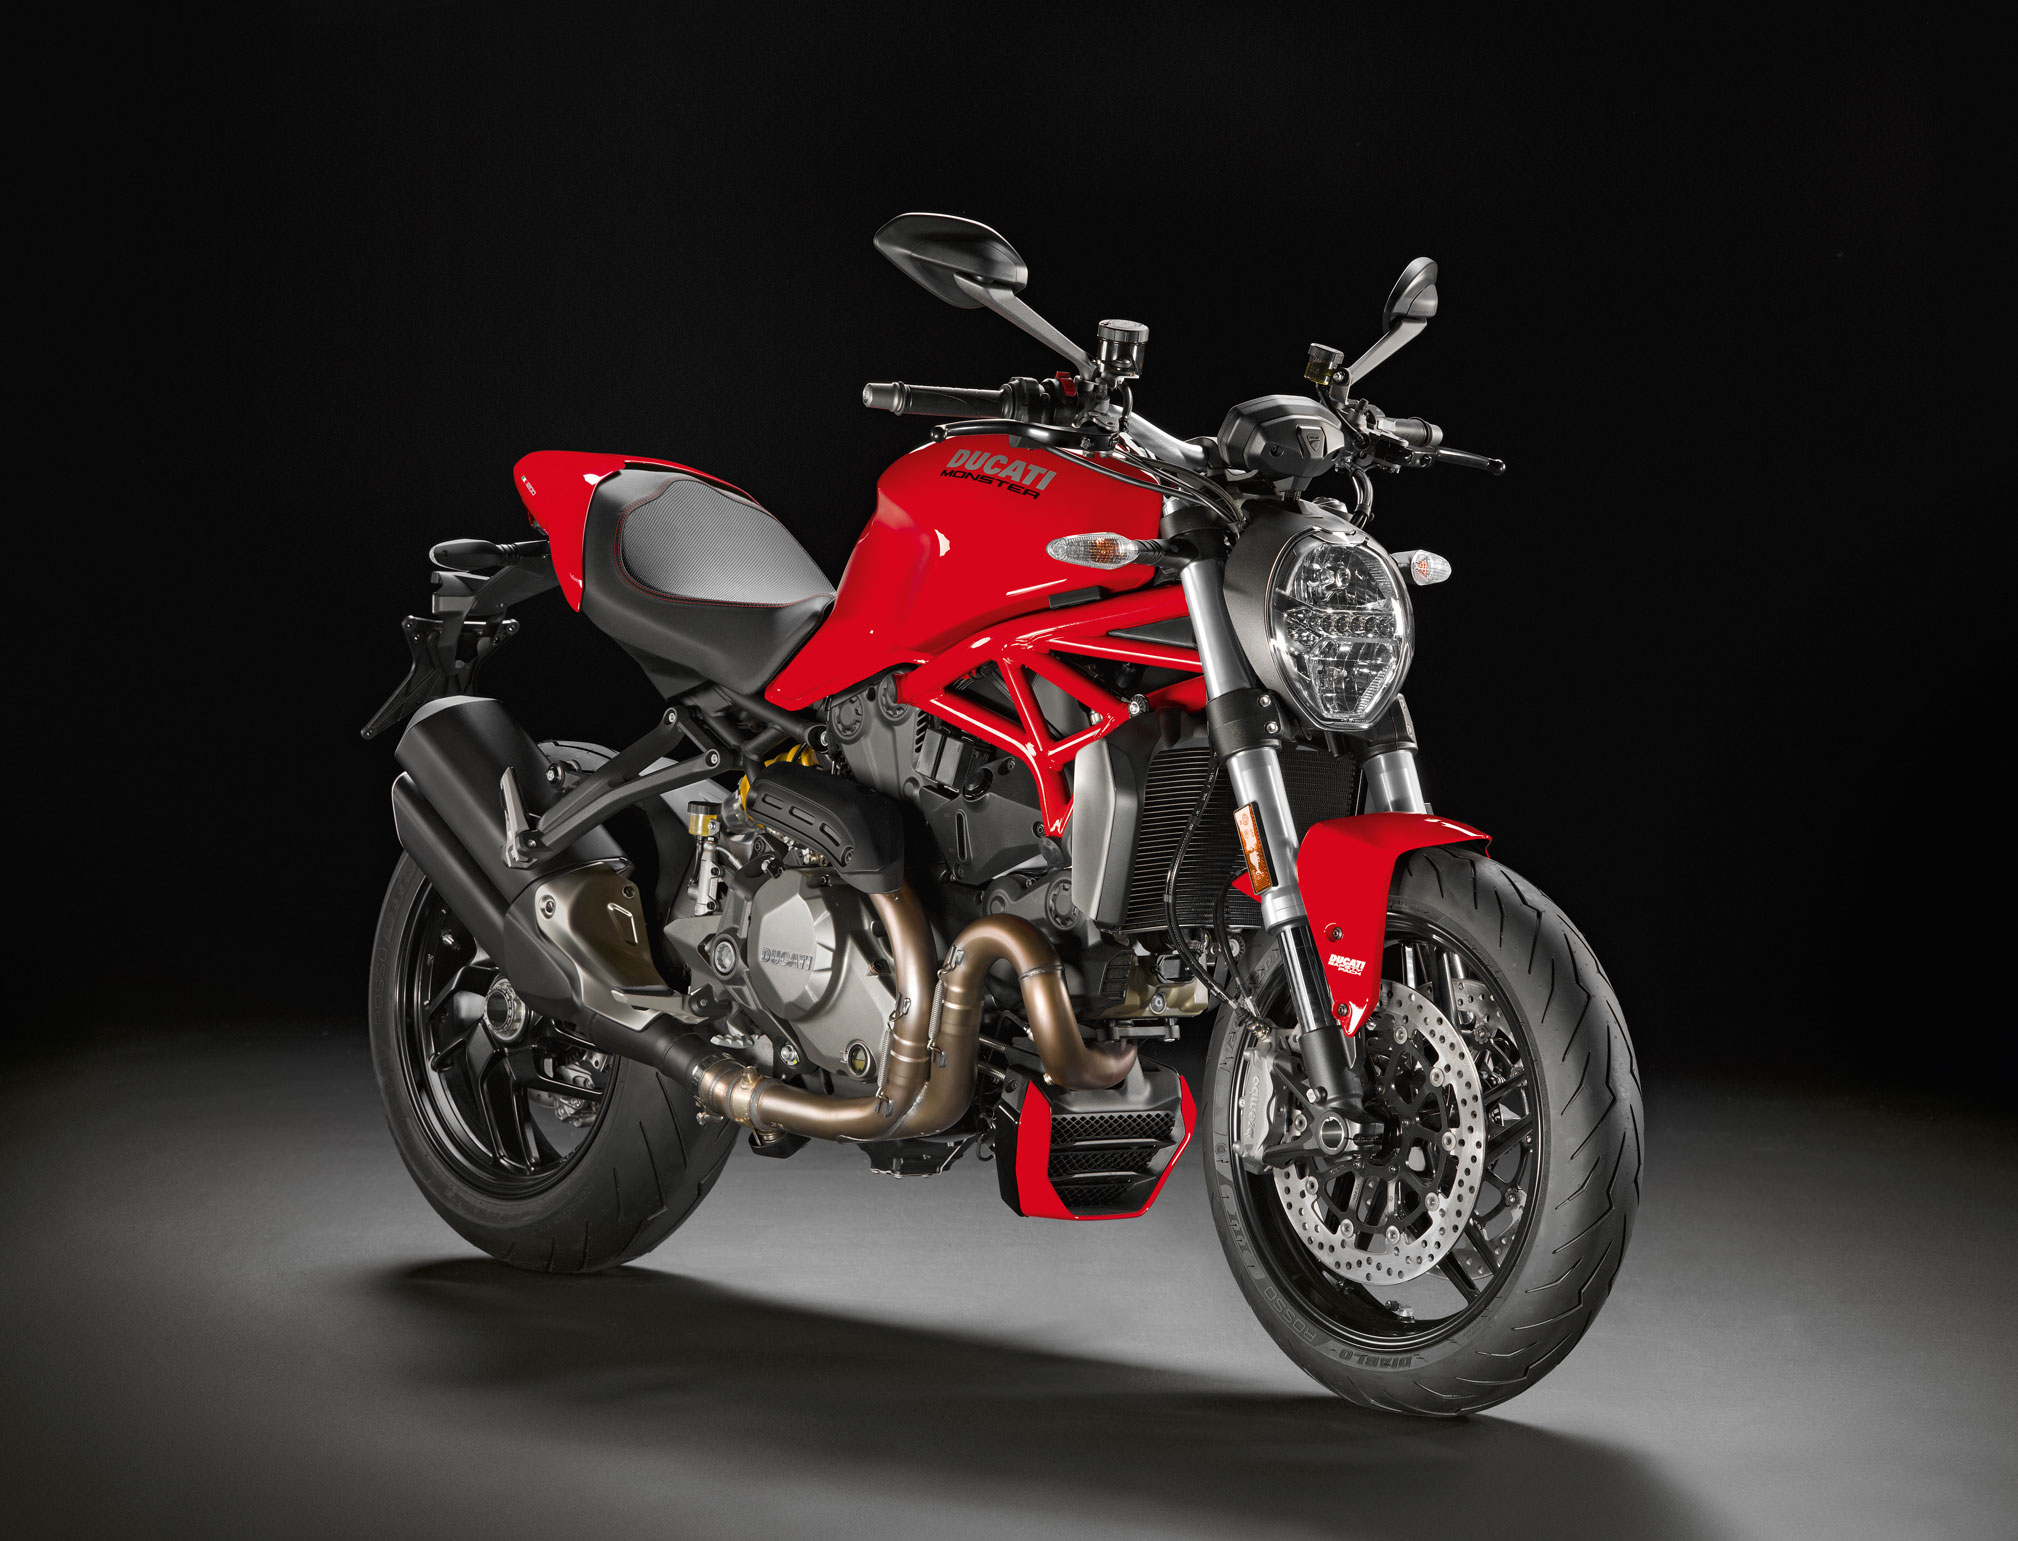 2018 ducati monster 1200 review totalmotorcycle. Black Bedroom Furniture Sets. Home Design Ideas